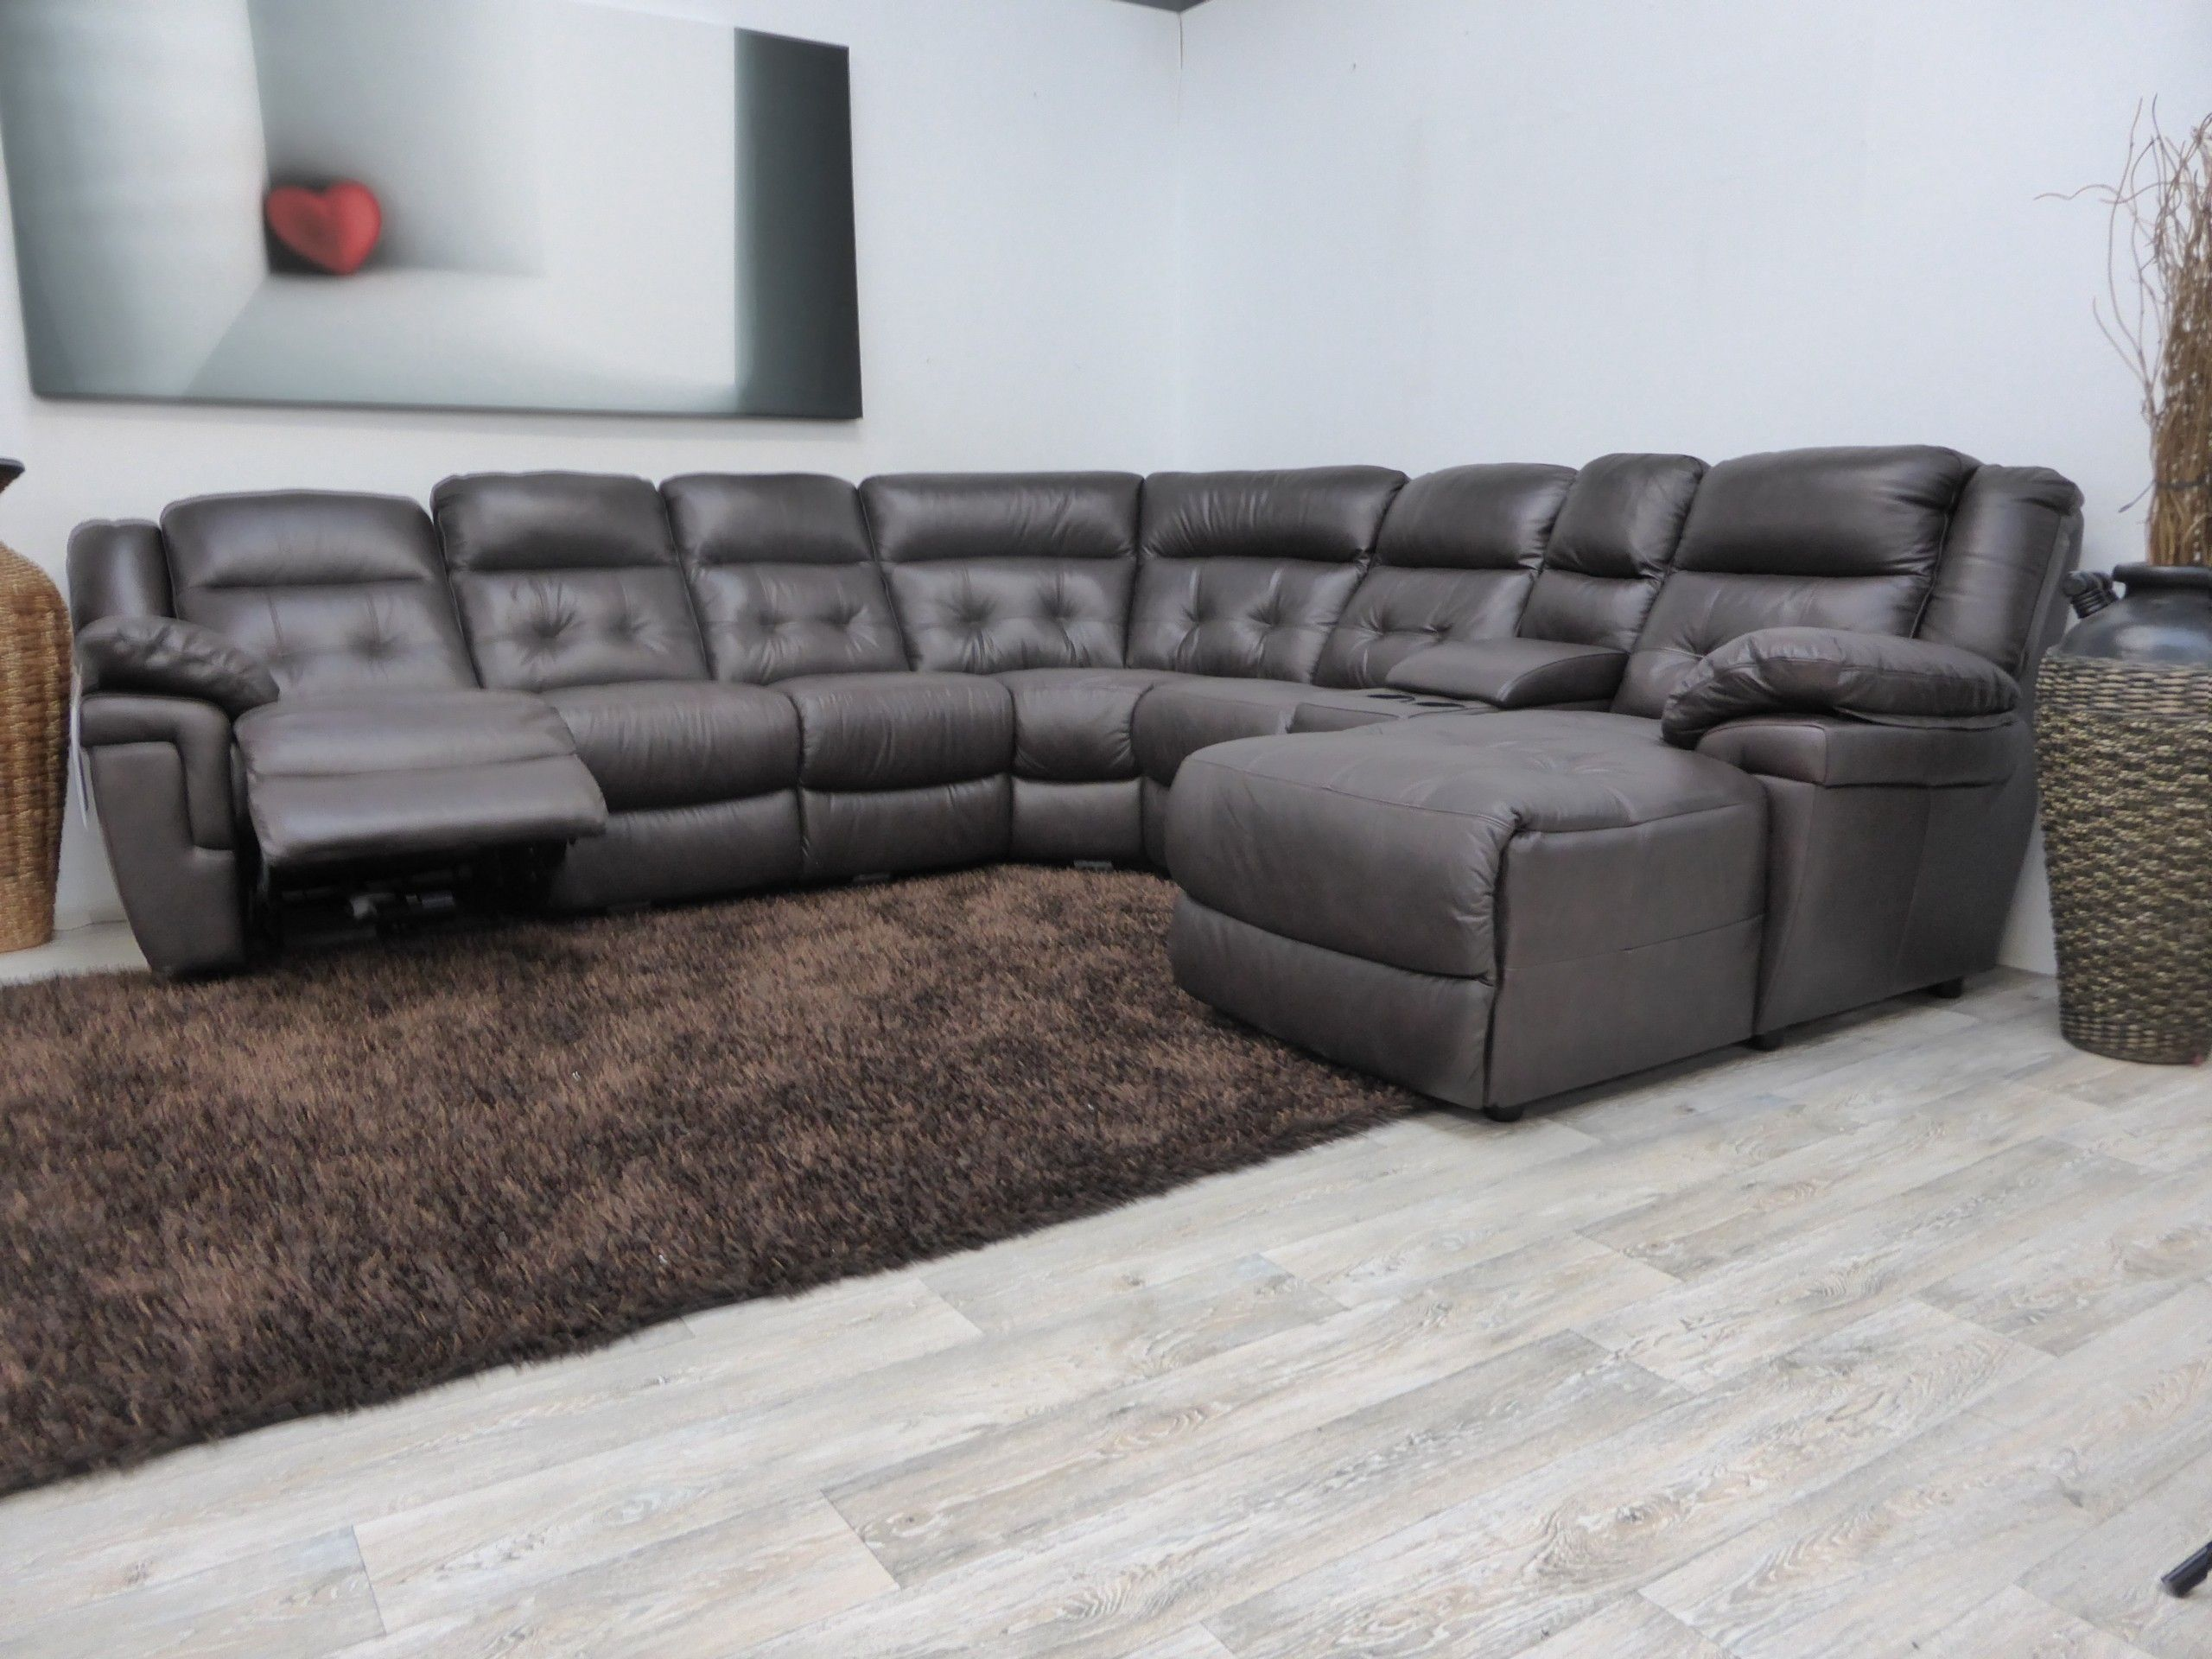 L shaped sofa design with black upholstery faux leather sofa